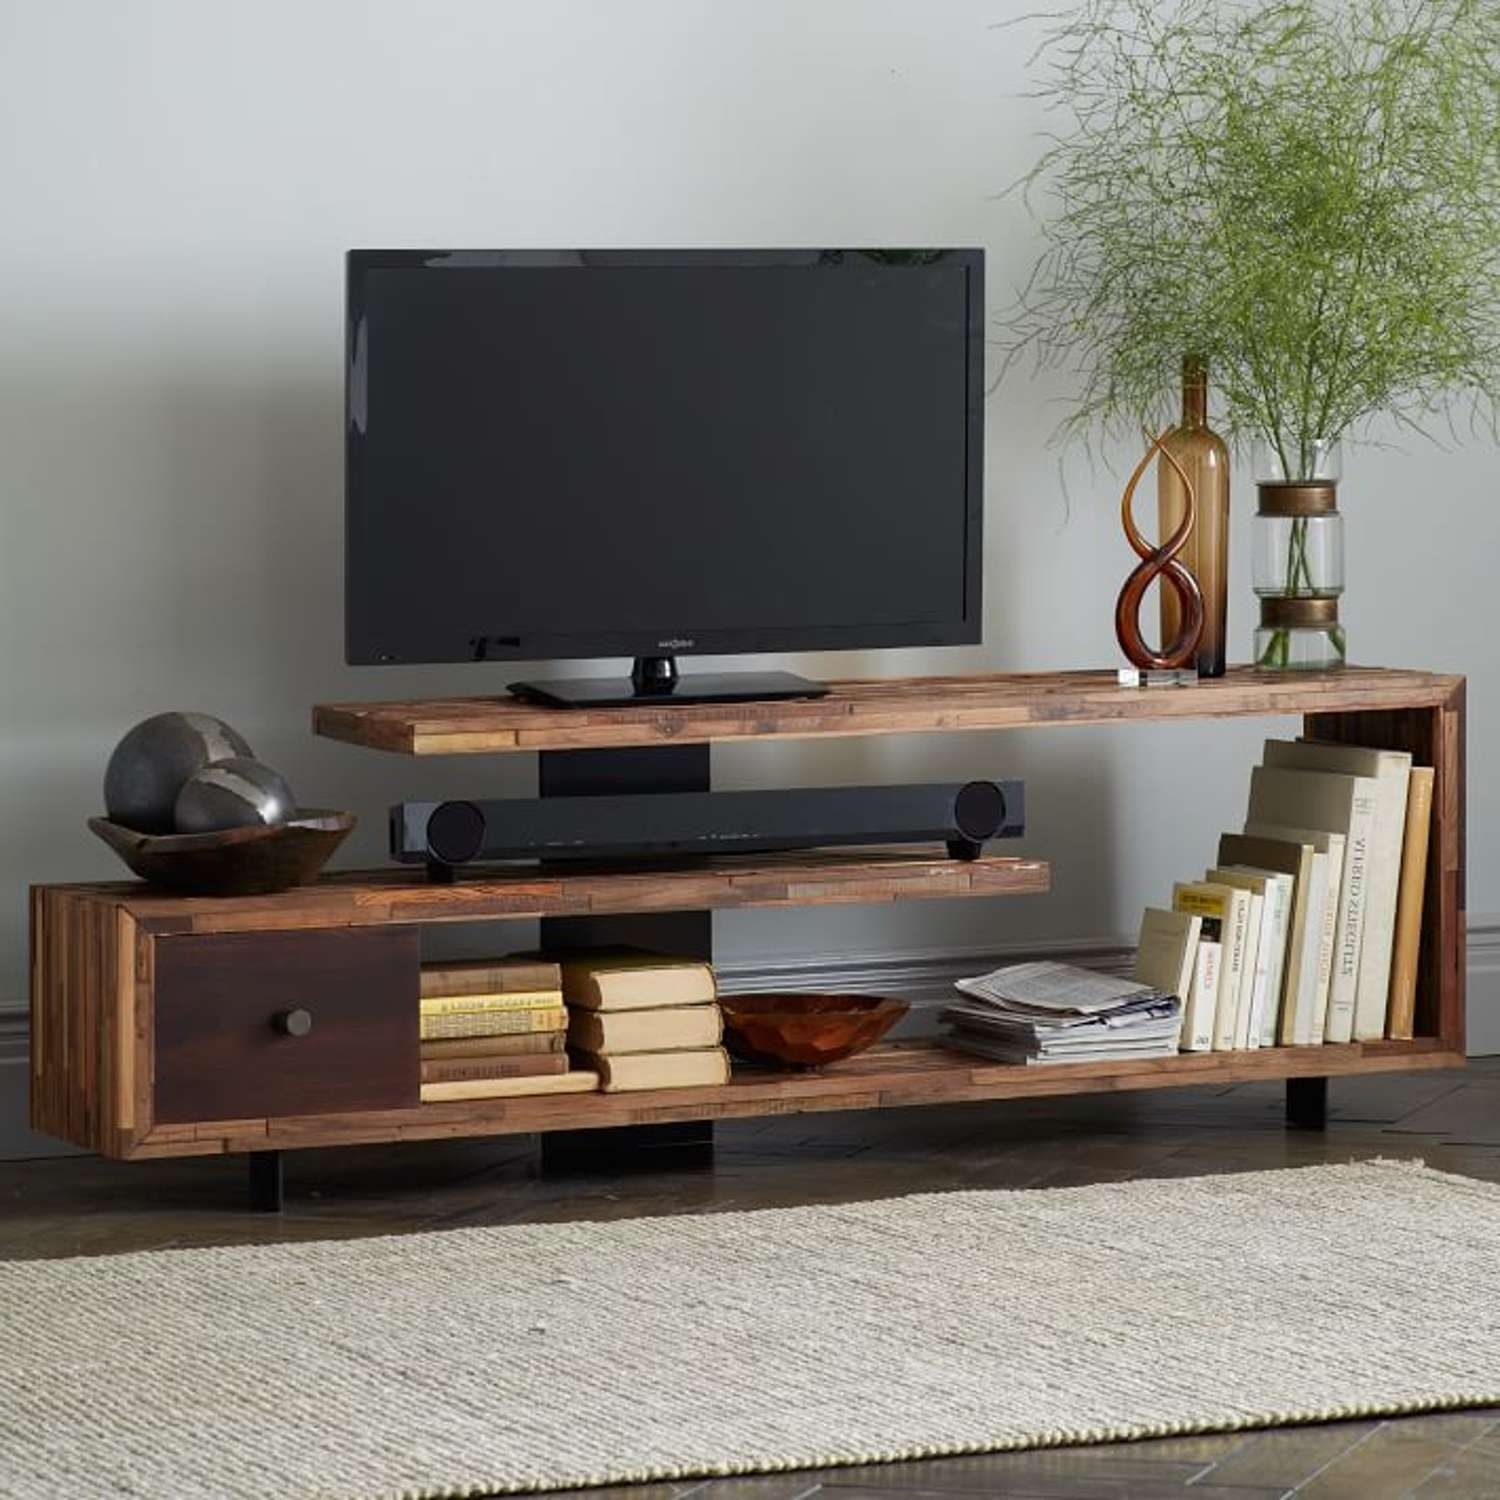 Encouragement Storage Home Design Ideas Along With Storage Wooden Throughout Contemporary Wood Tv Stands (View 4 of 15)